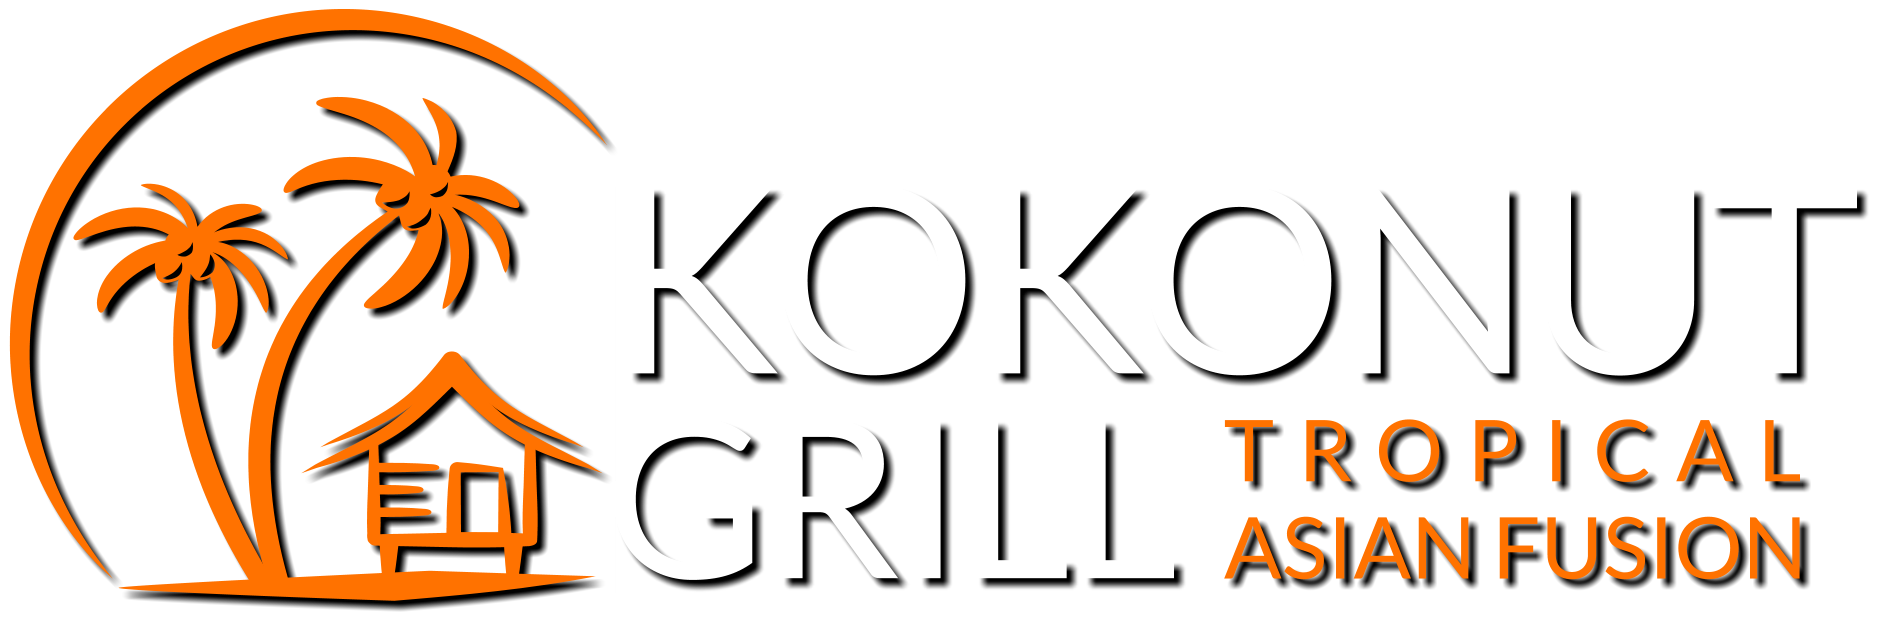 KokonutGrill-Icon.png